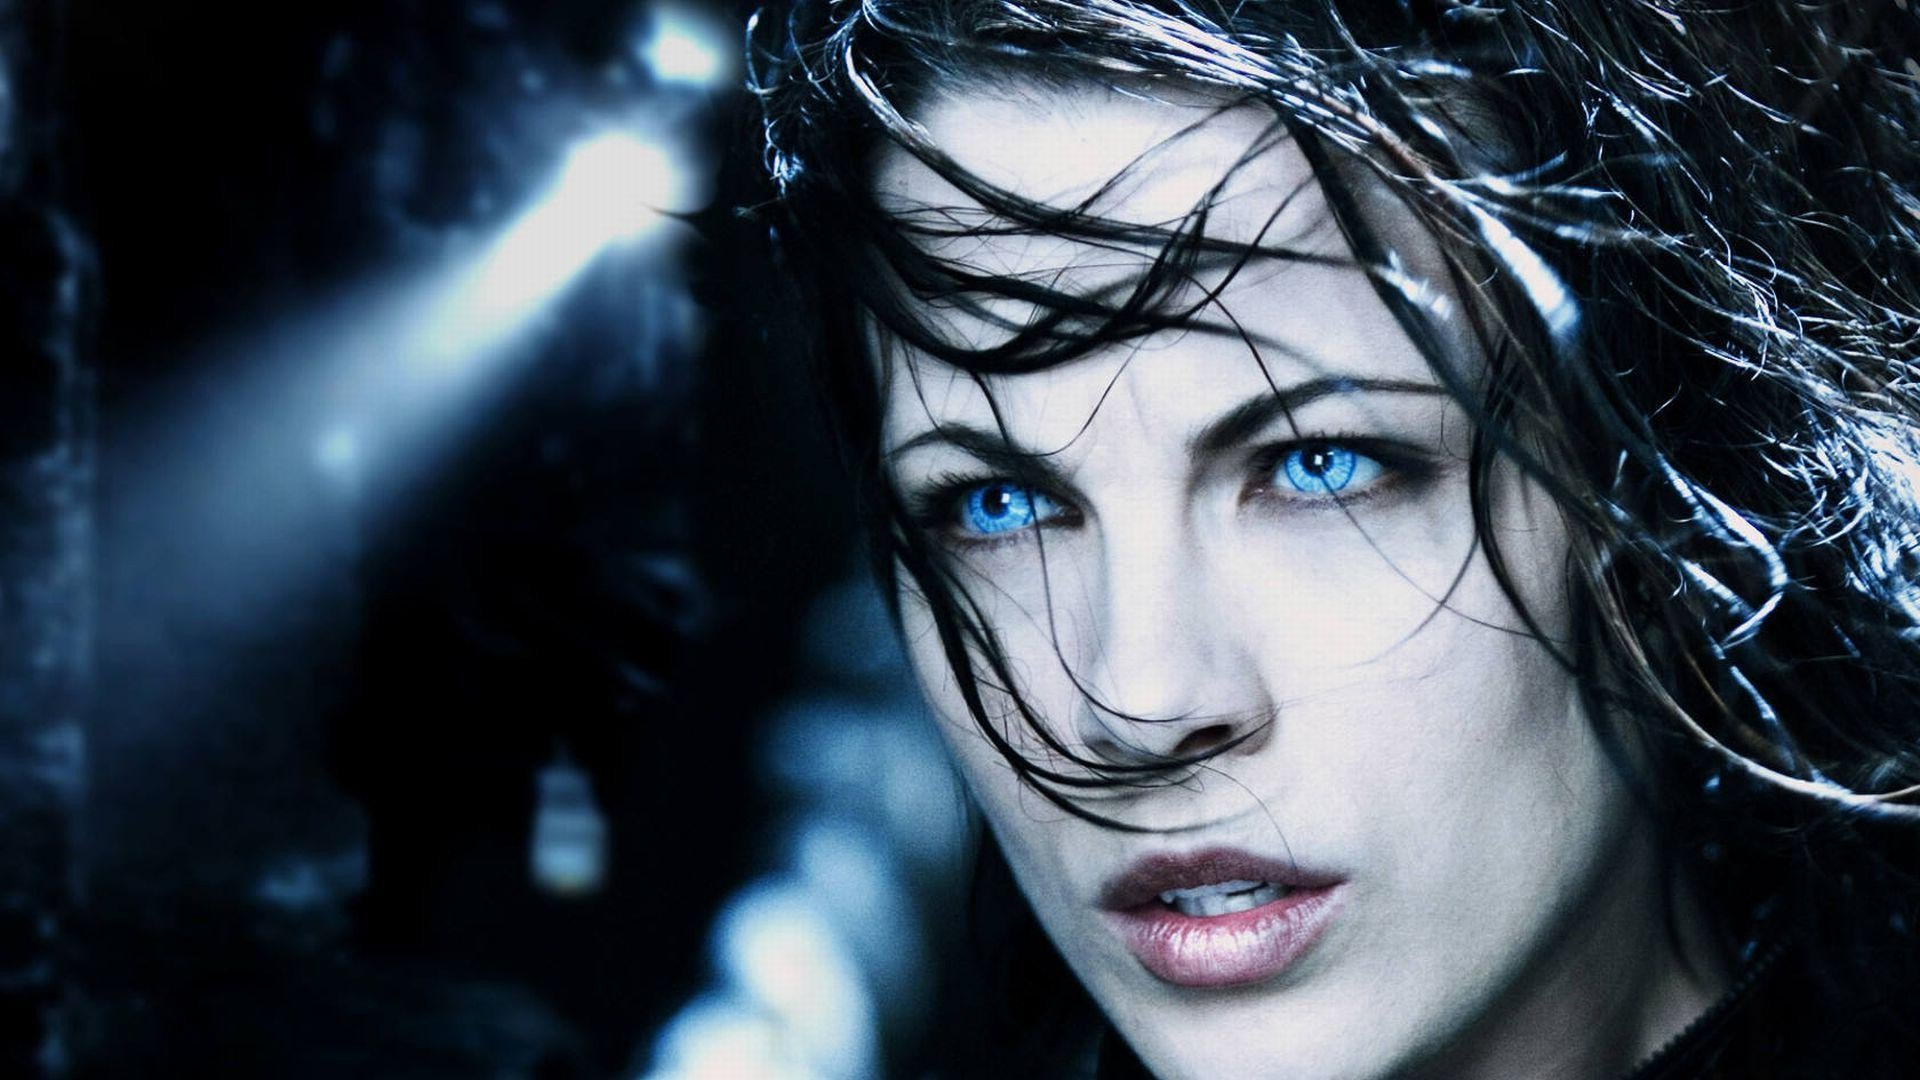 Kate Beckinsale Hd Celebrities 4k Wallpapers Images